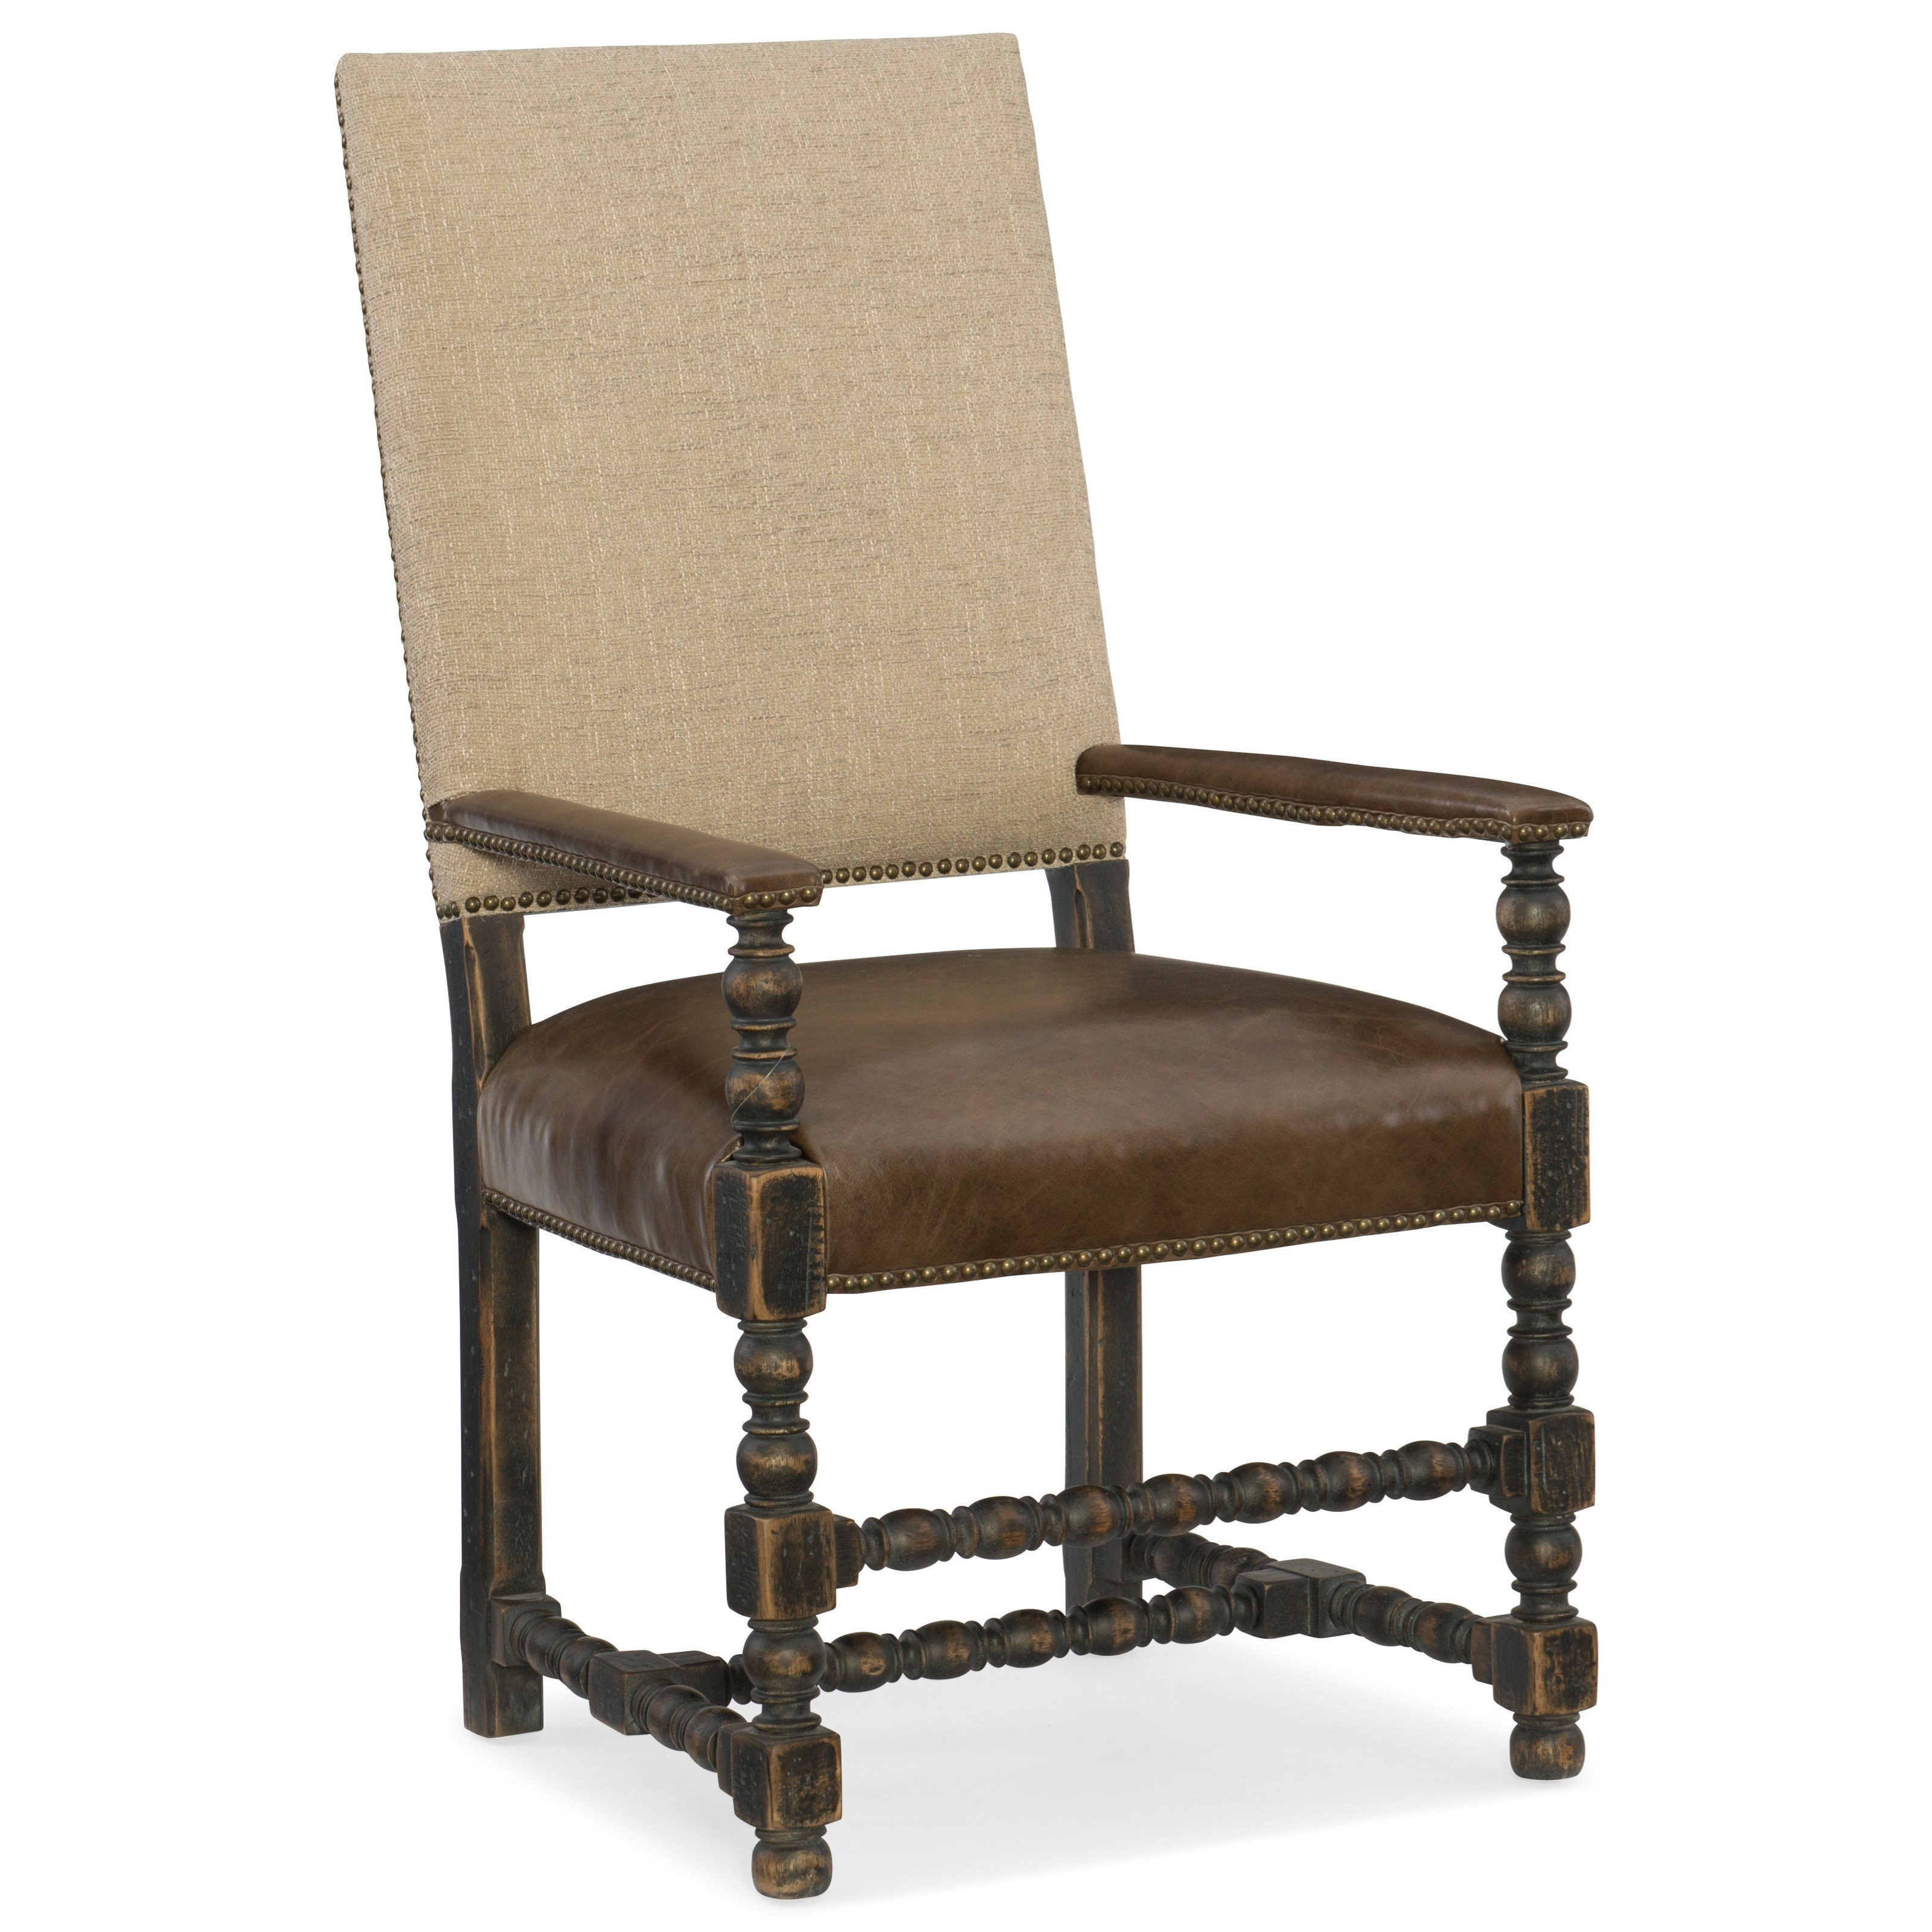 Hill Country Comfort Upholstered Arm Chair by Hooker Furniture at Baer's Furniture